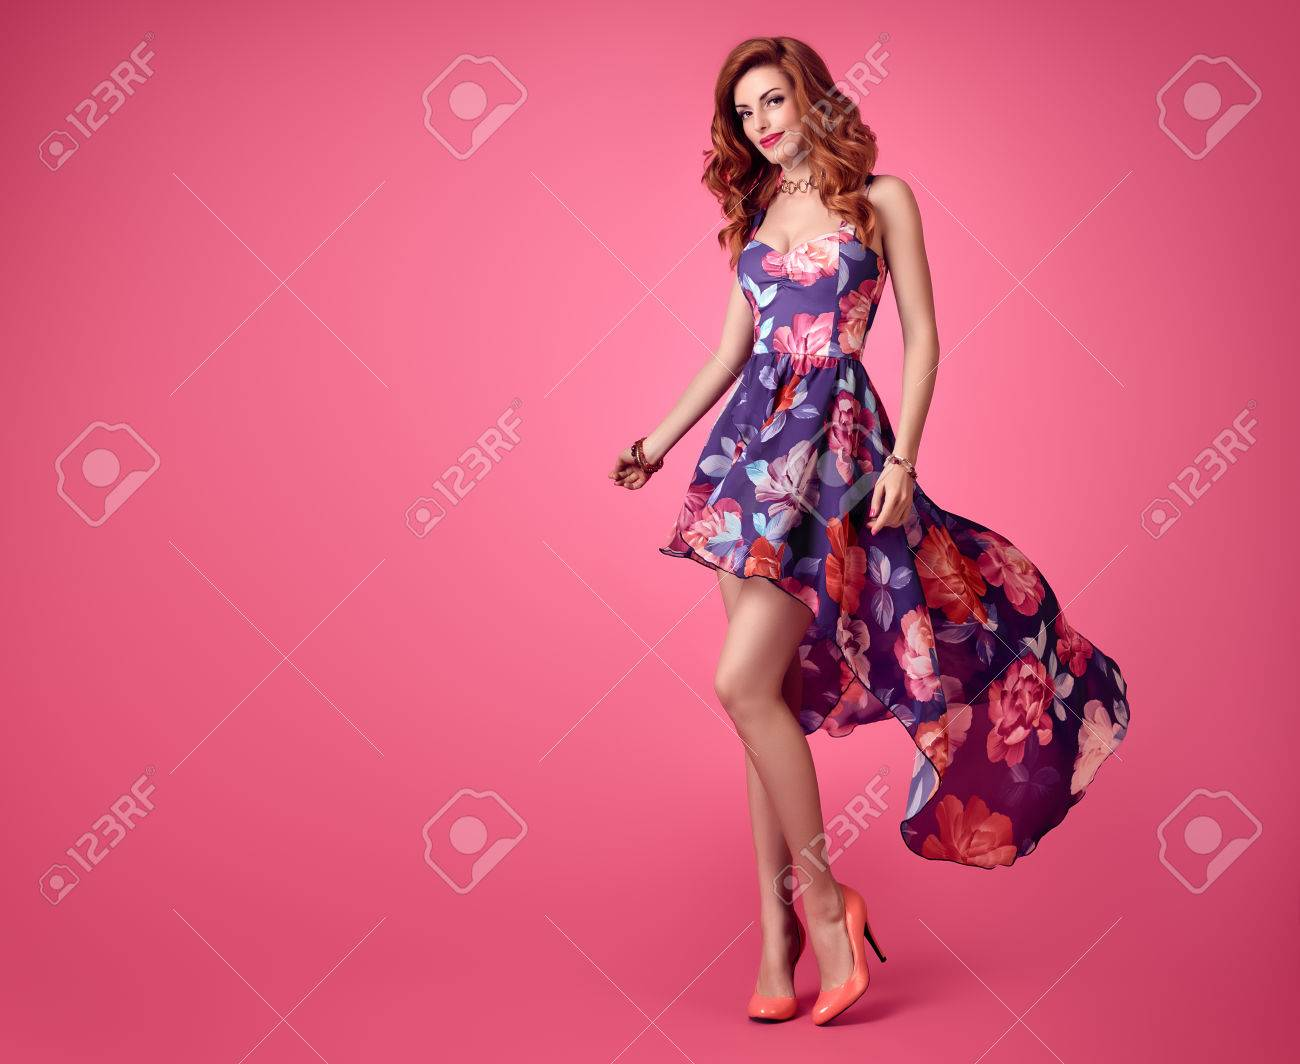 c96b175386 Sensual Sexy Redhead woman in Fashion Trendy Floral summer Dress Smiling. Beauty  Model in fashion